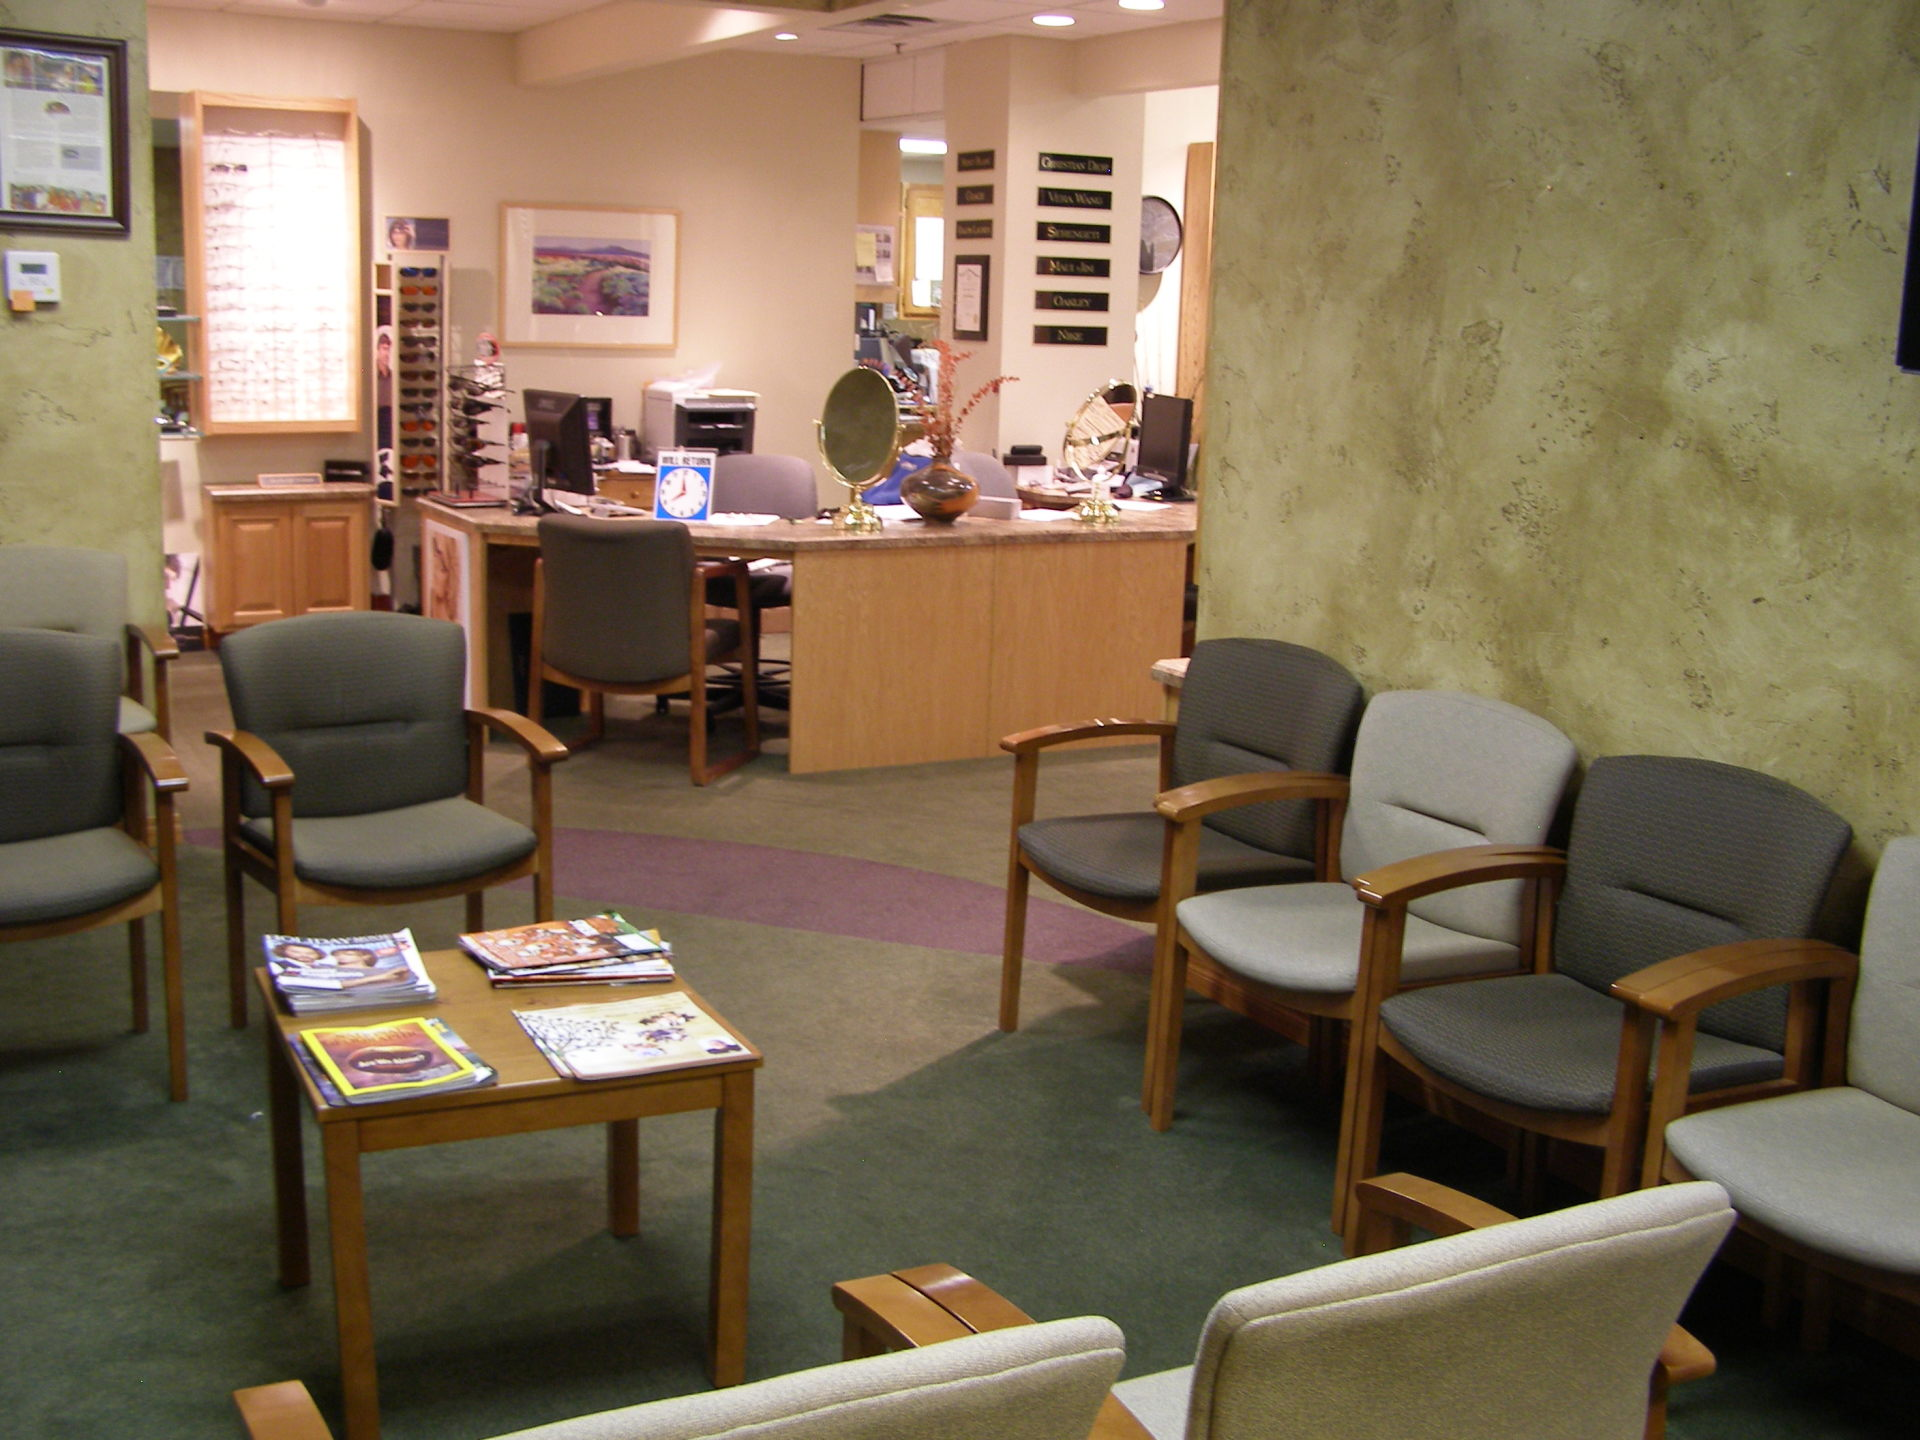 Dr. Ashley Ford's waiting room